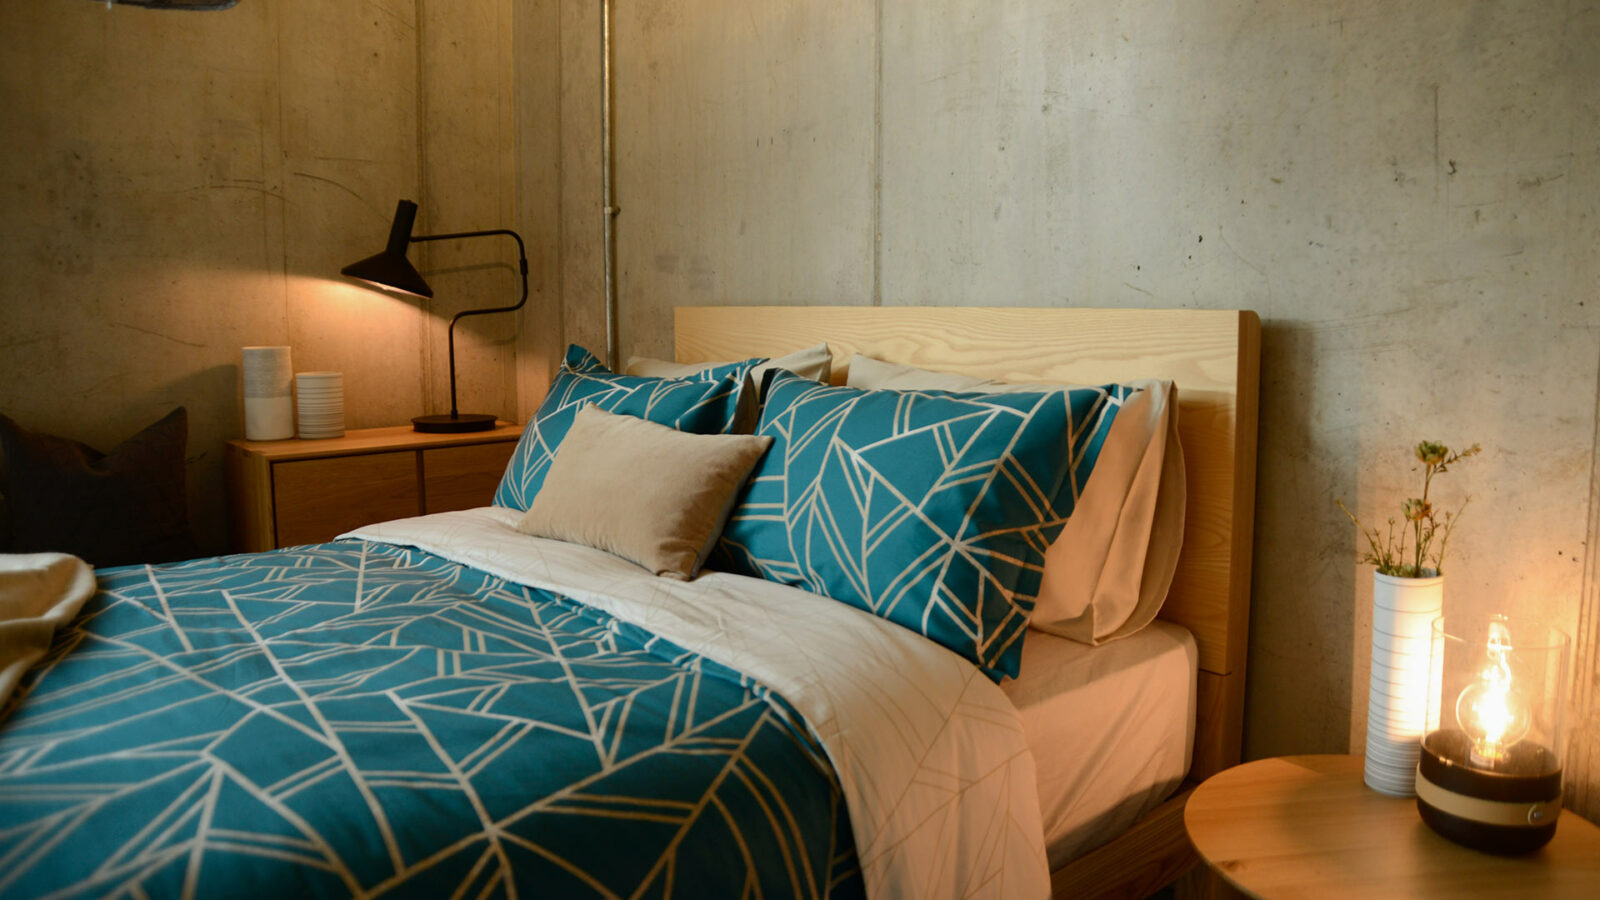 Shards pattern duvet set in teal green with ivory reverse